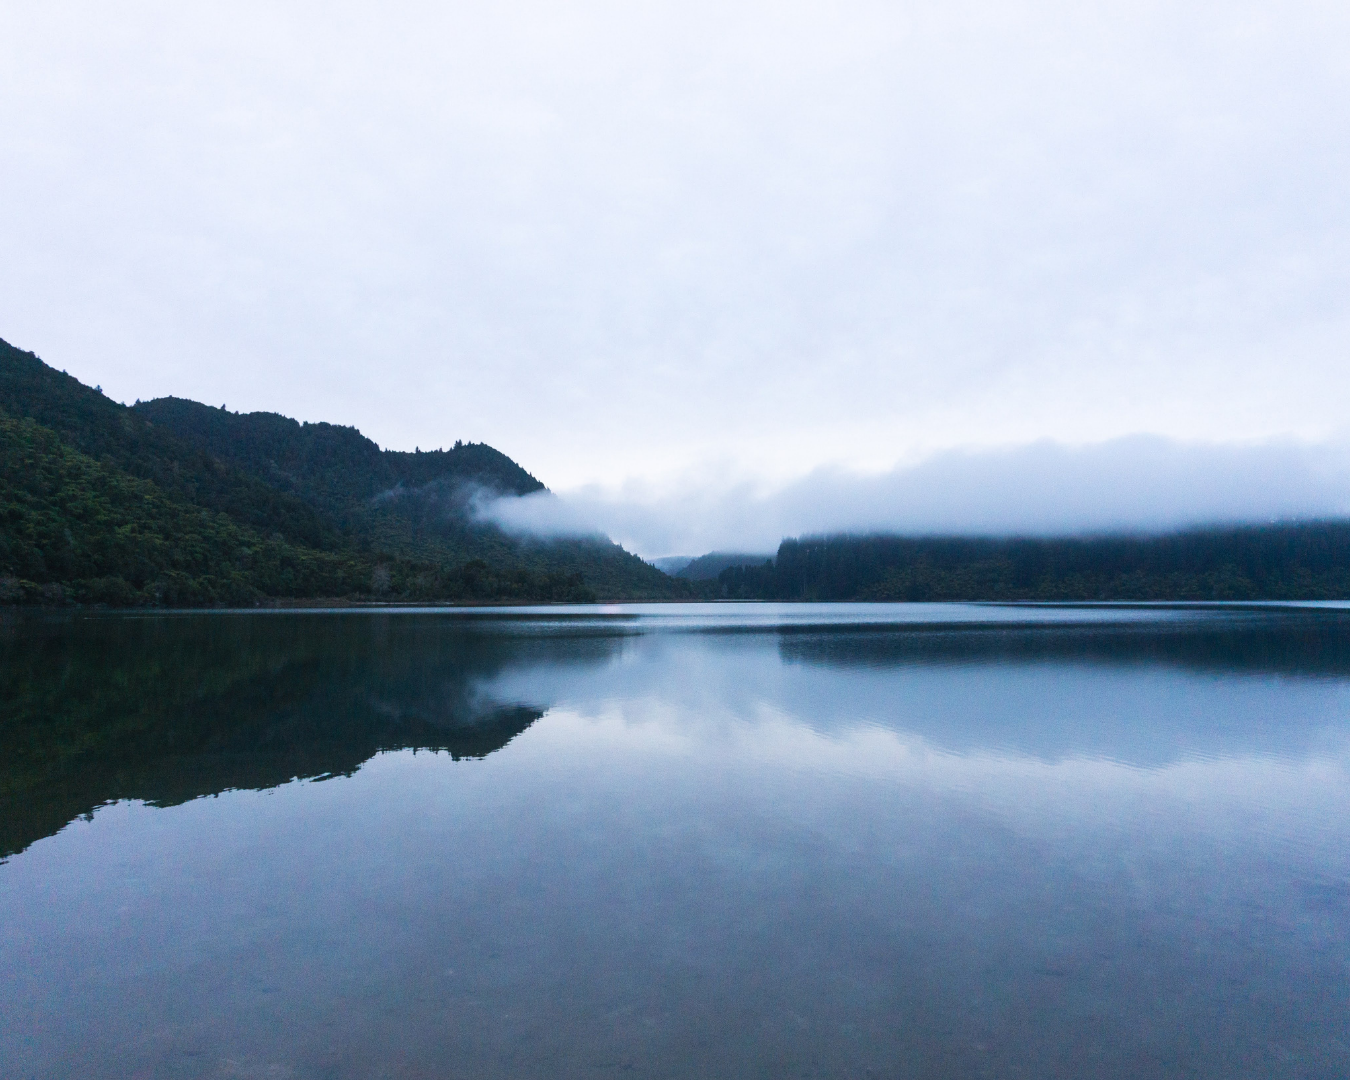 A scenic lake with a view of the clouds descending over the valley